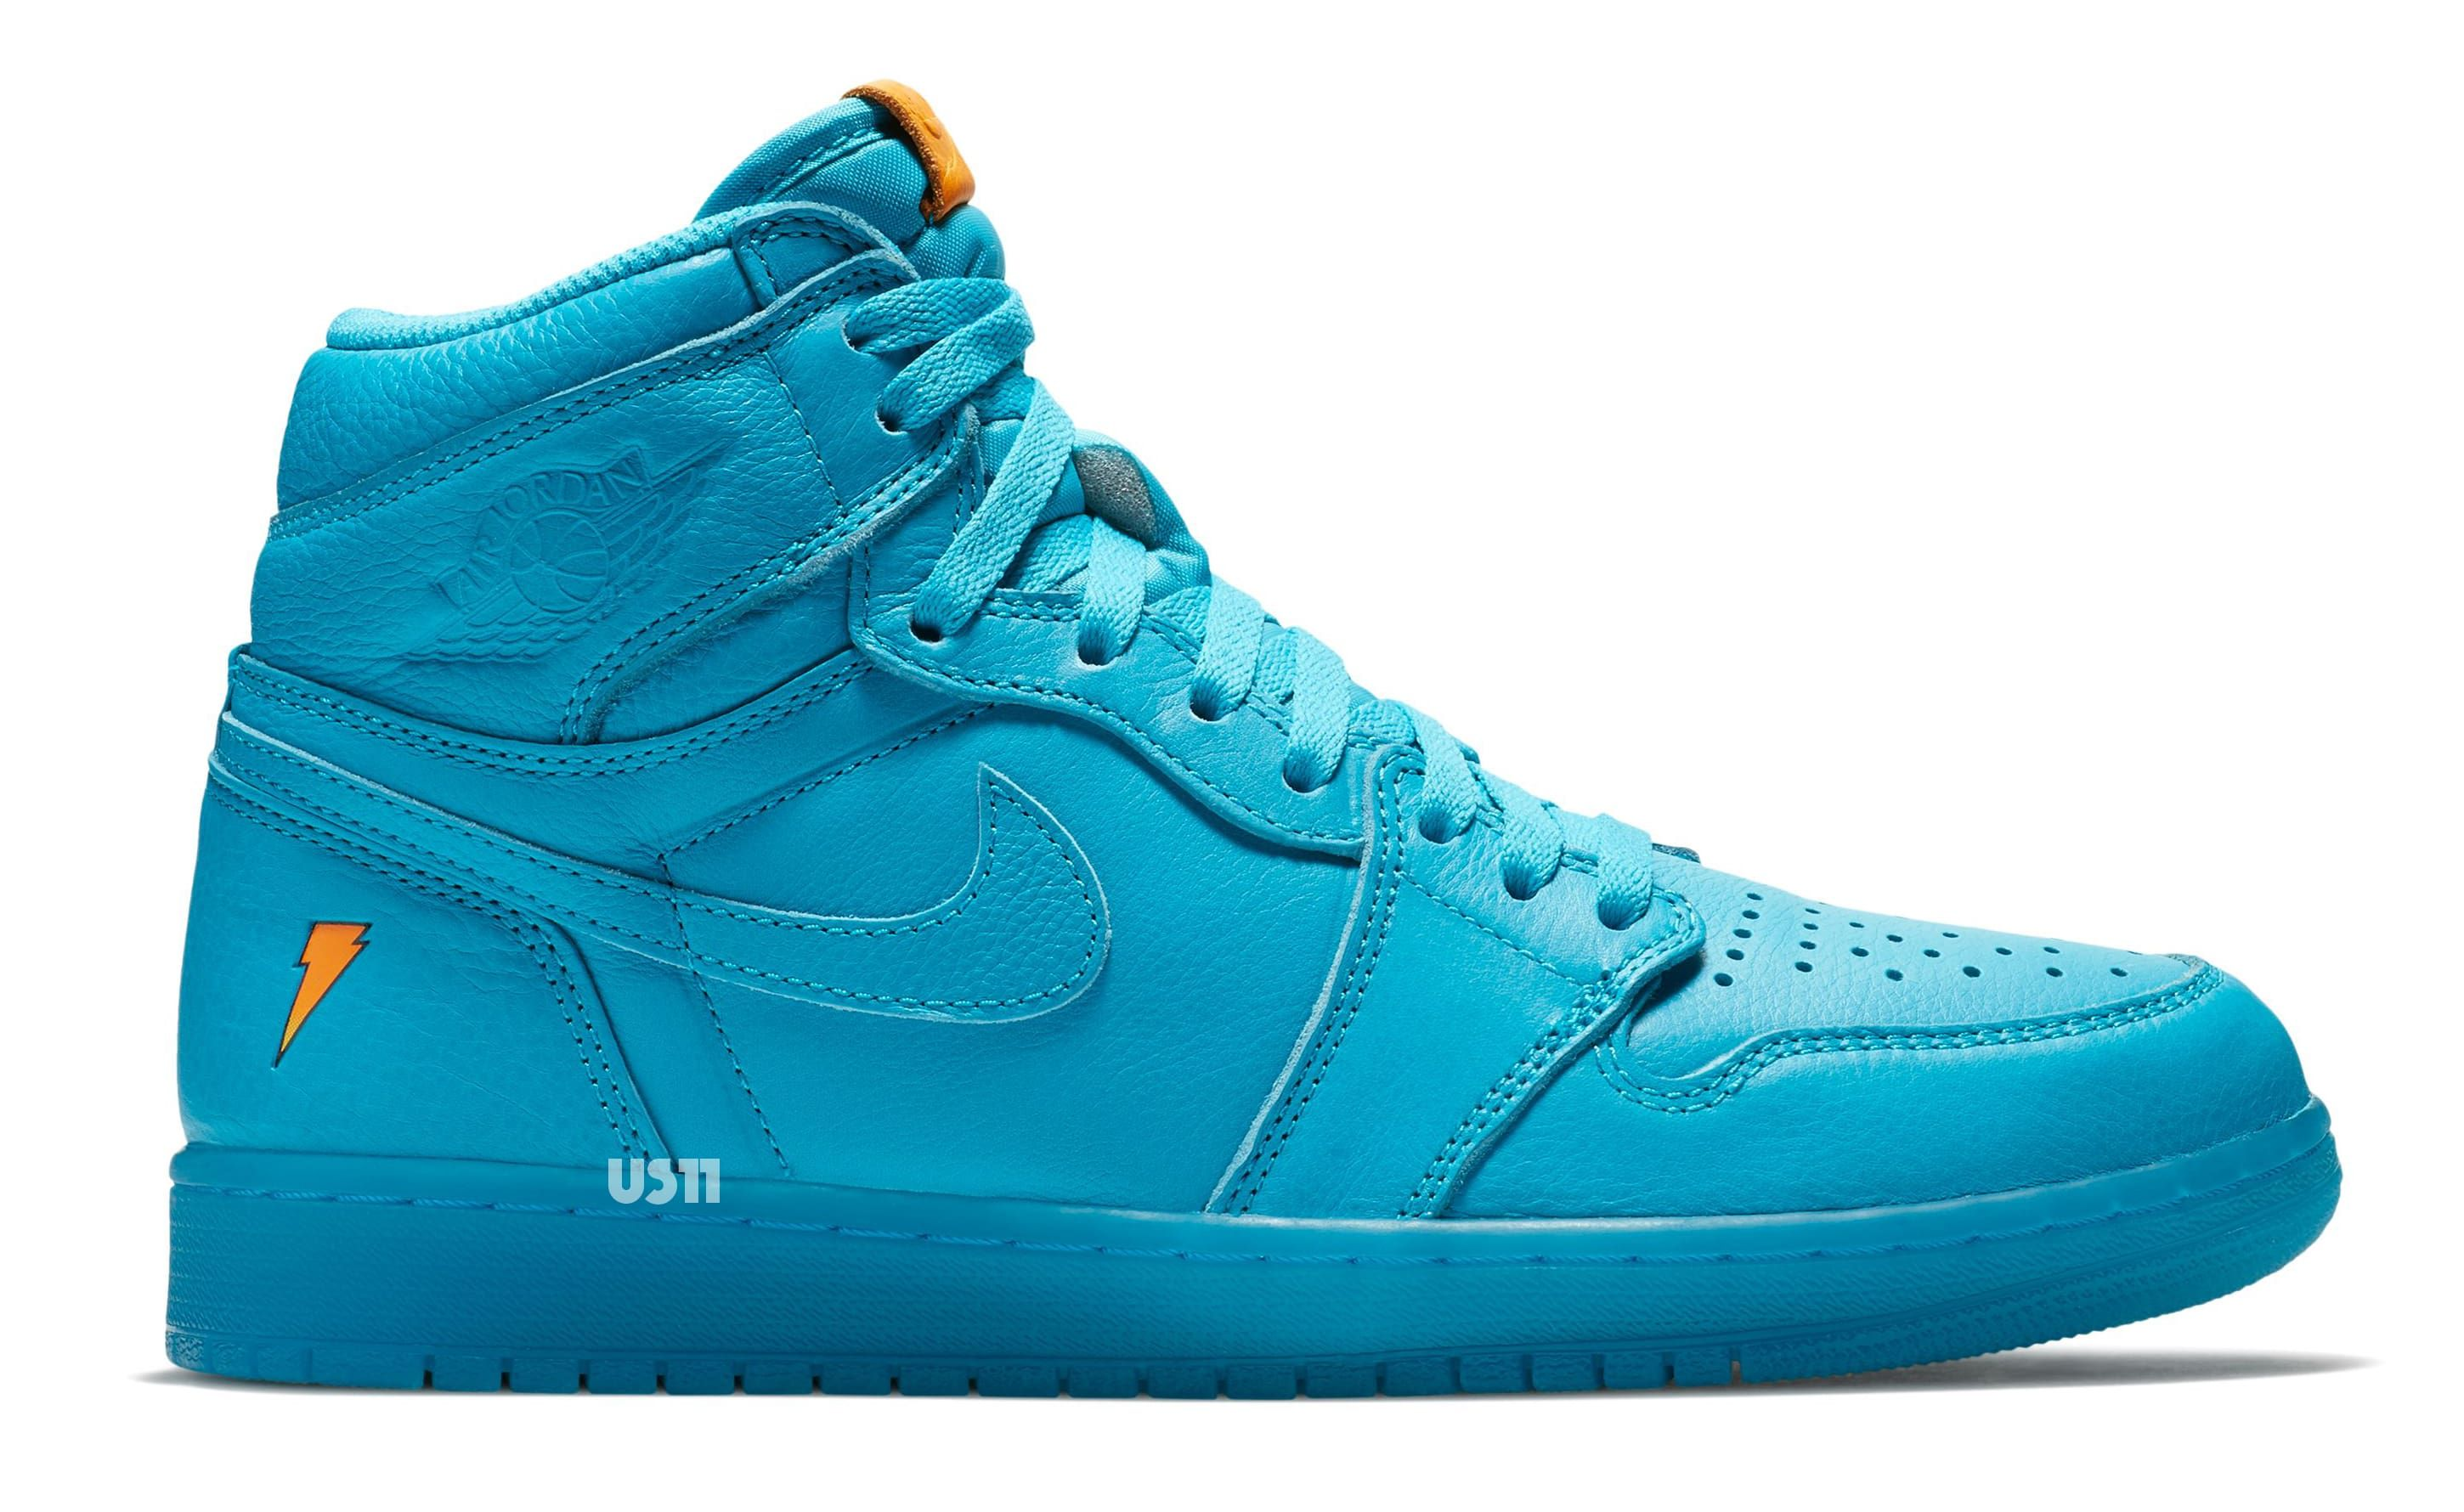 jordans gatorade retro 1 nz